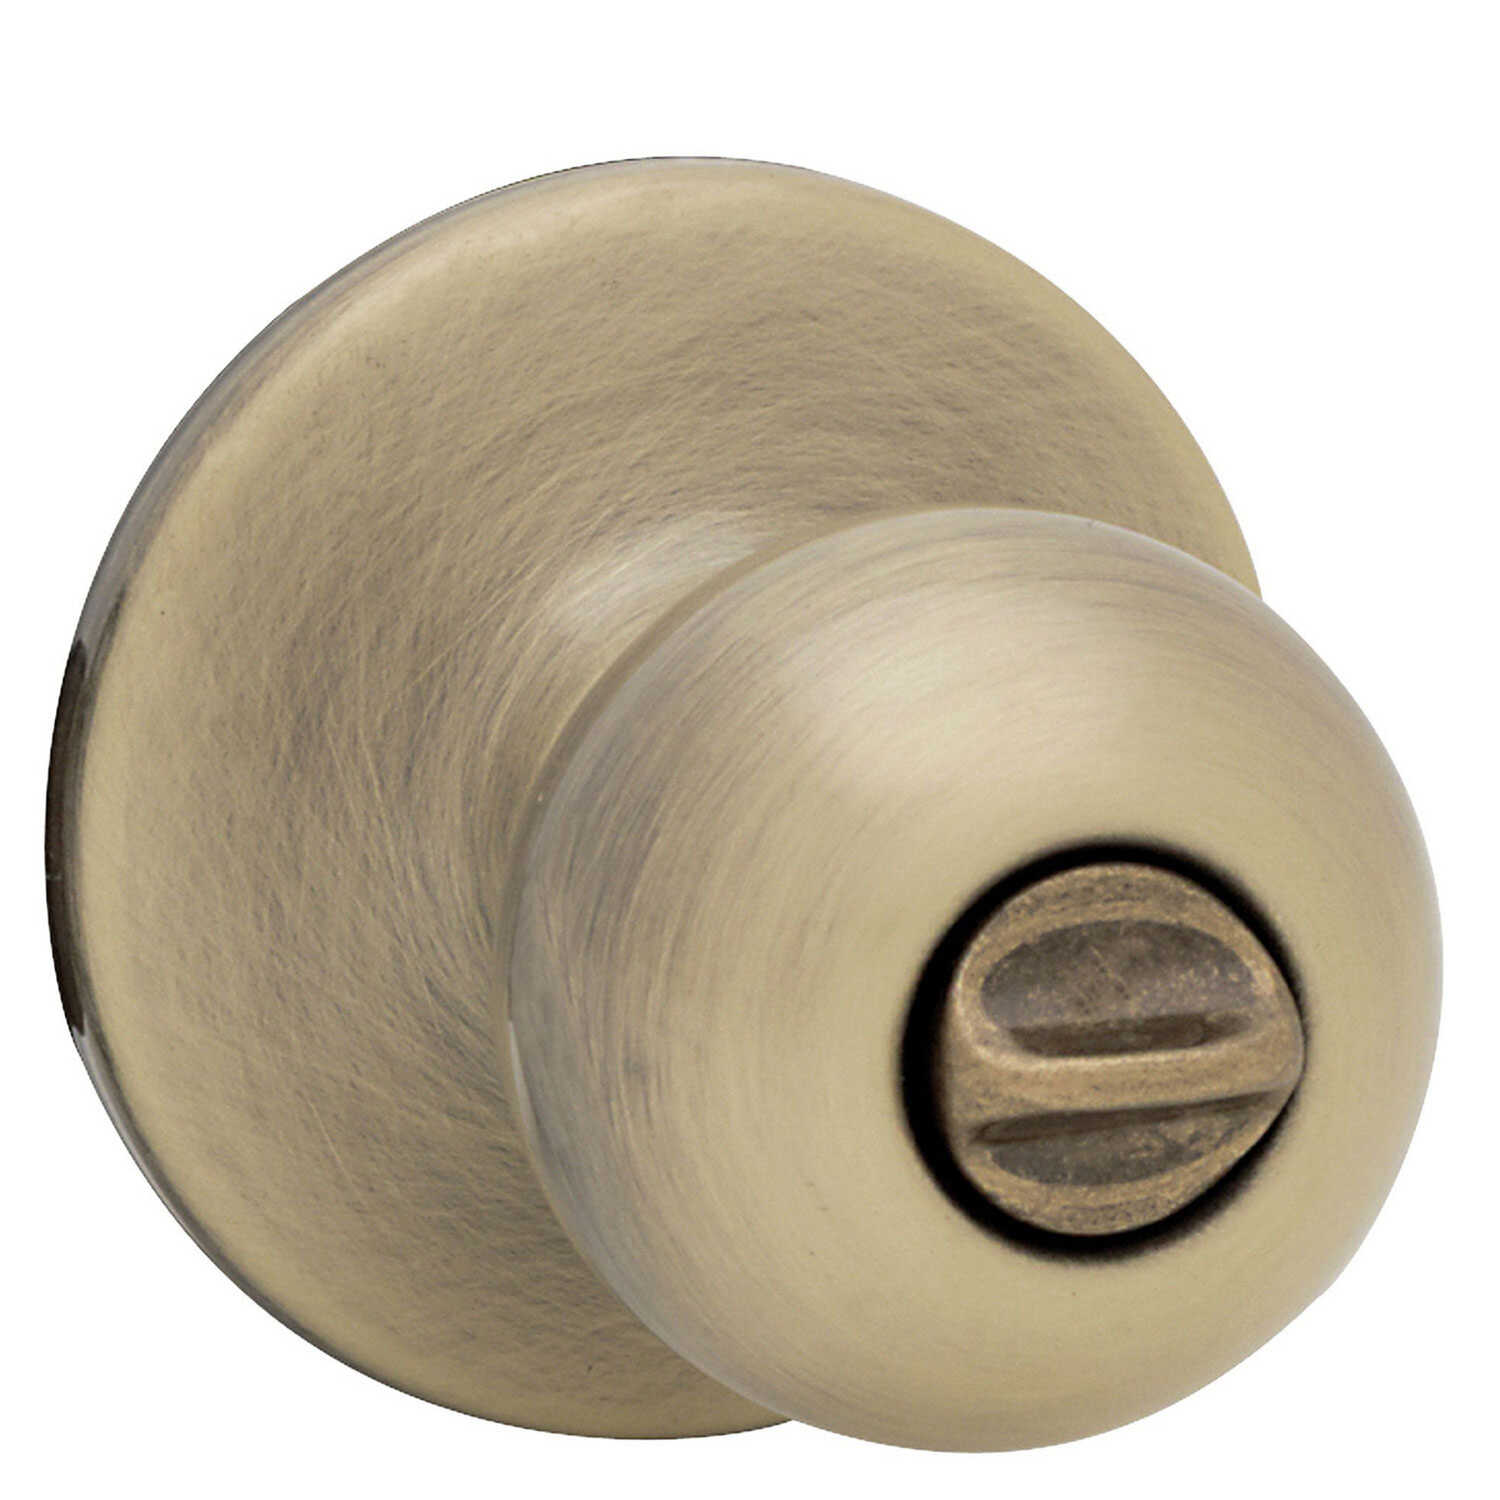 Kwikset  Polo  Antique Brass  Steel  Privacy Lockset  ANSI/BHMA Grade 3  1-3/4 in.